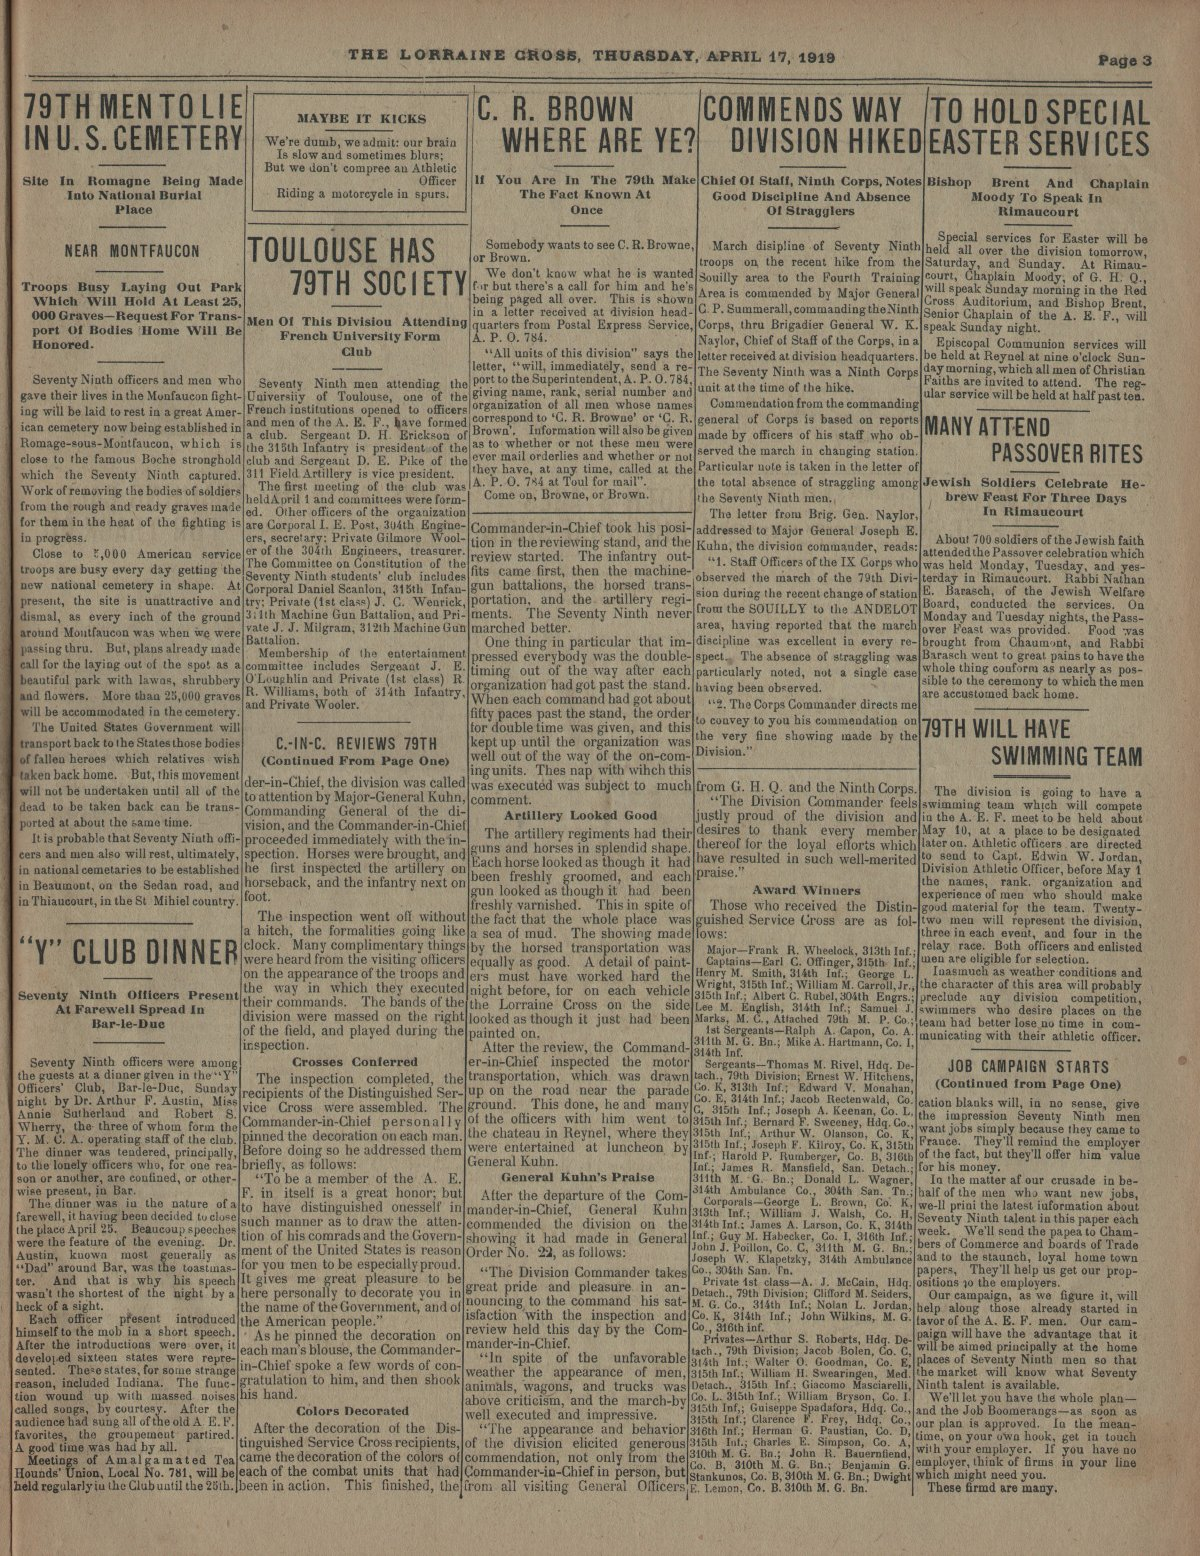 Lorraine Cross Newspaper Volume 1 Number 5 France April 17 1919 Page 3